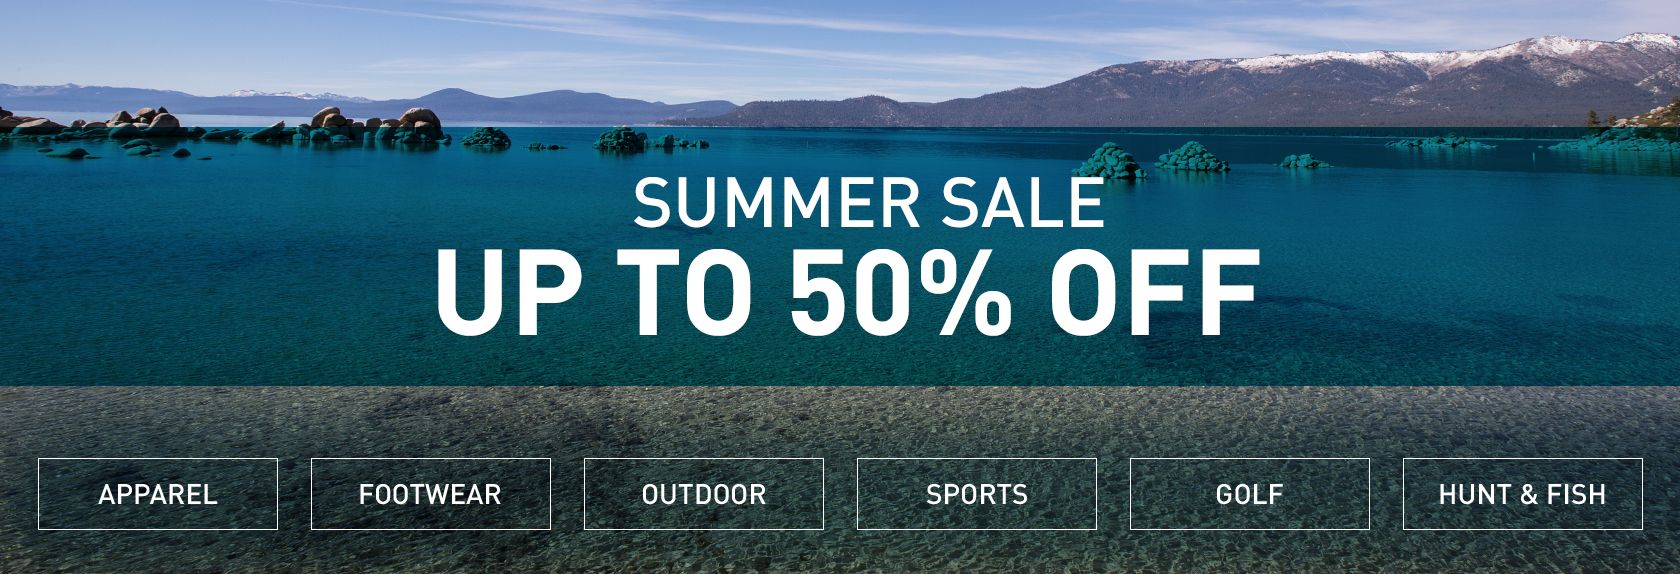 Shop Summer Sale - Up To 50% Off